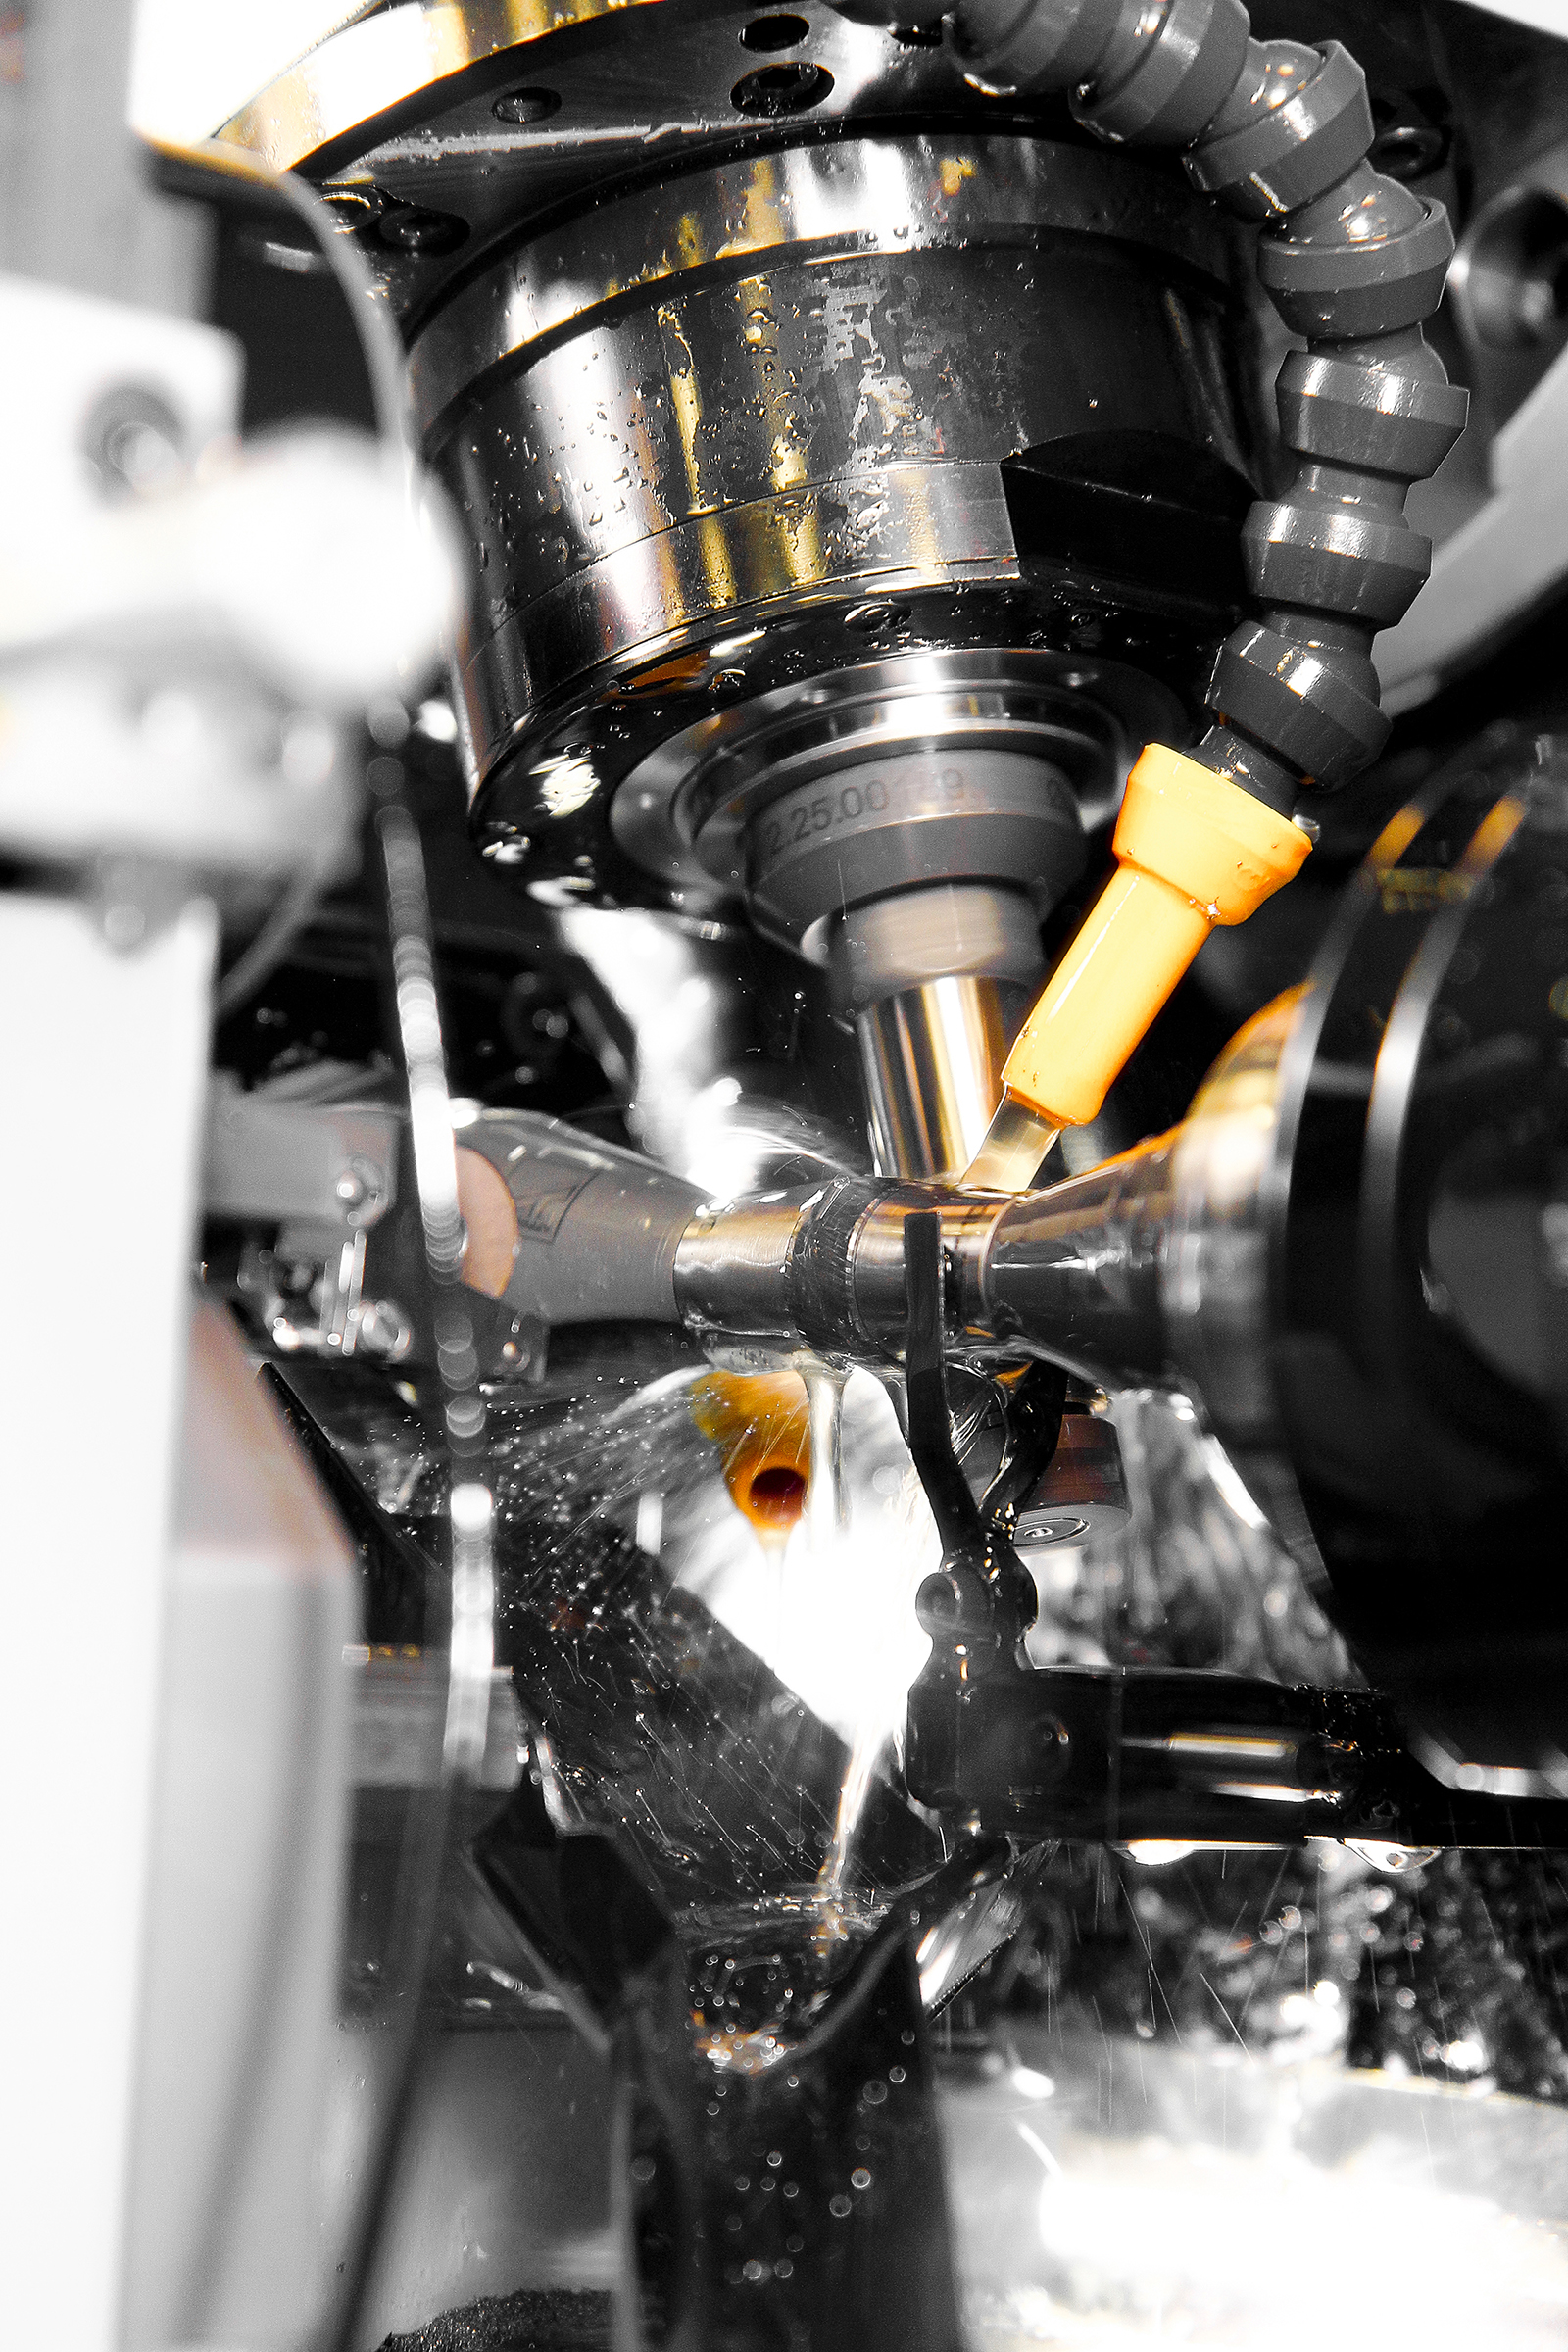 Gear cutting helicals gears with automatic loading system